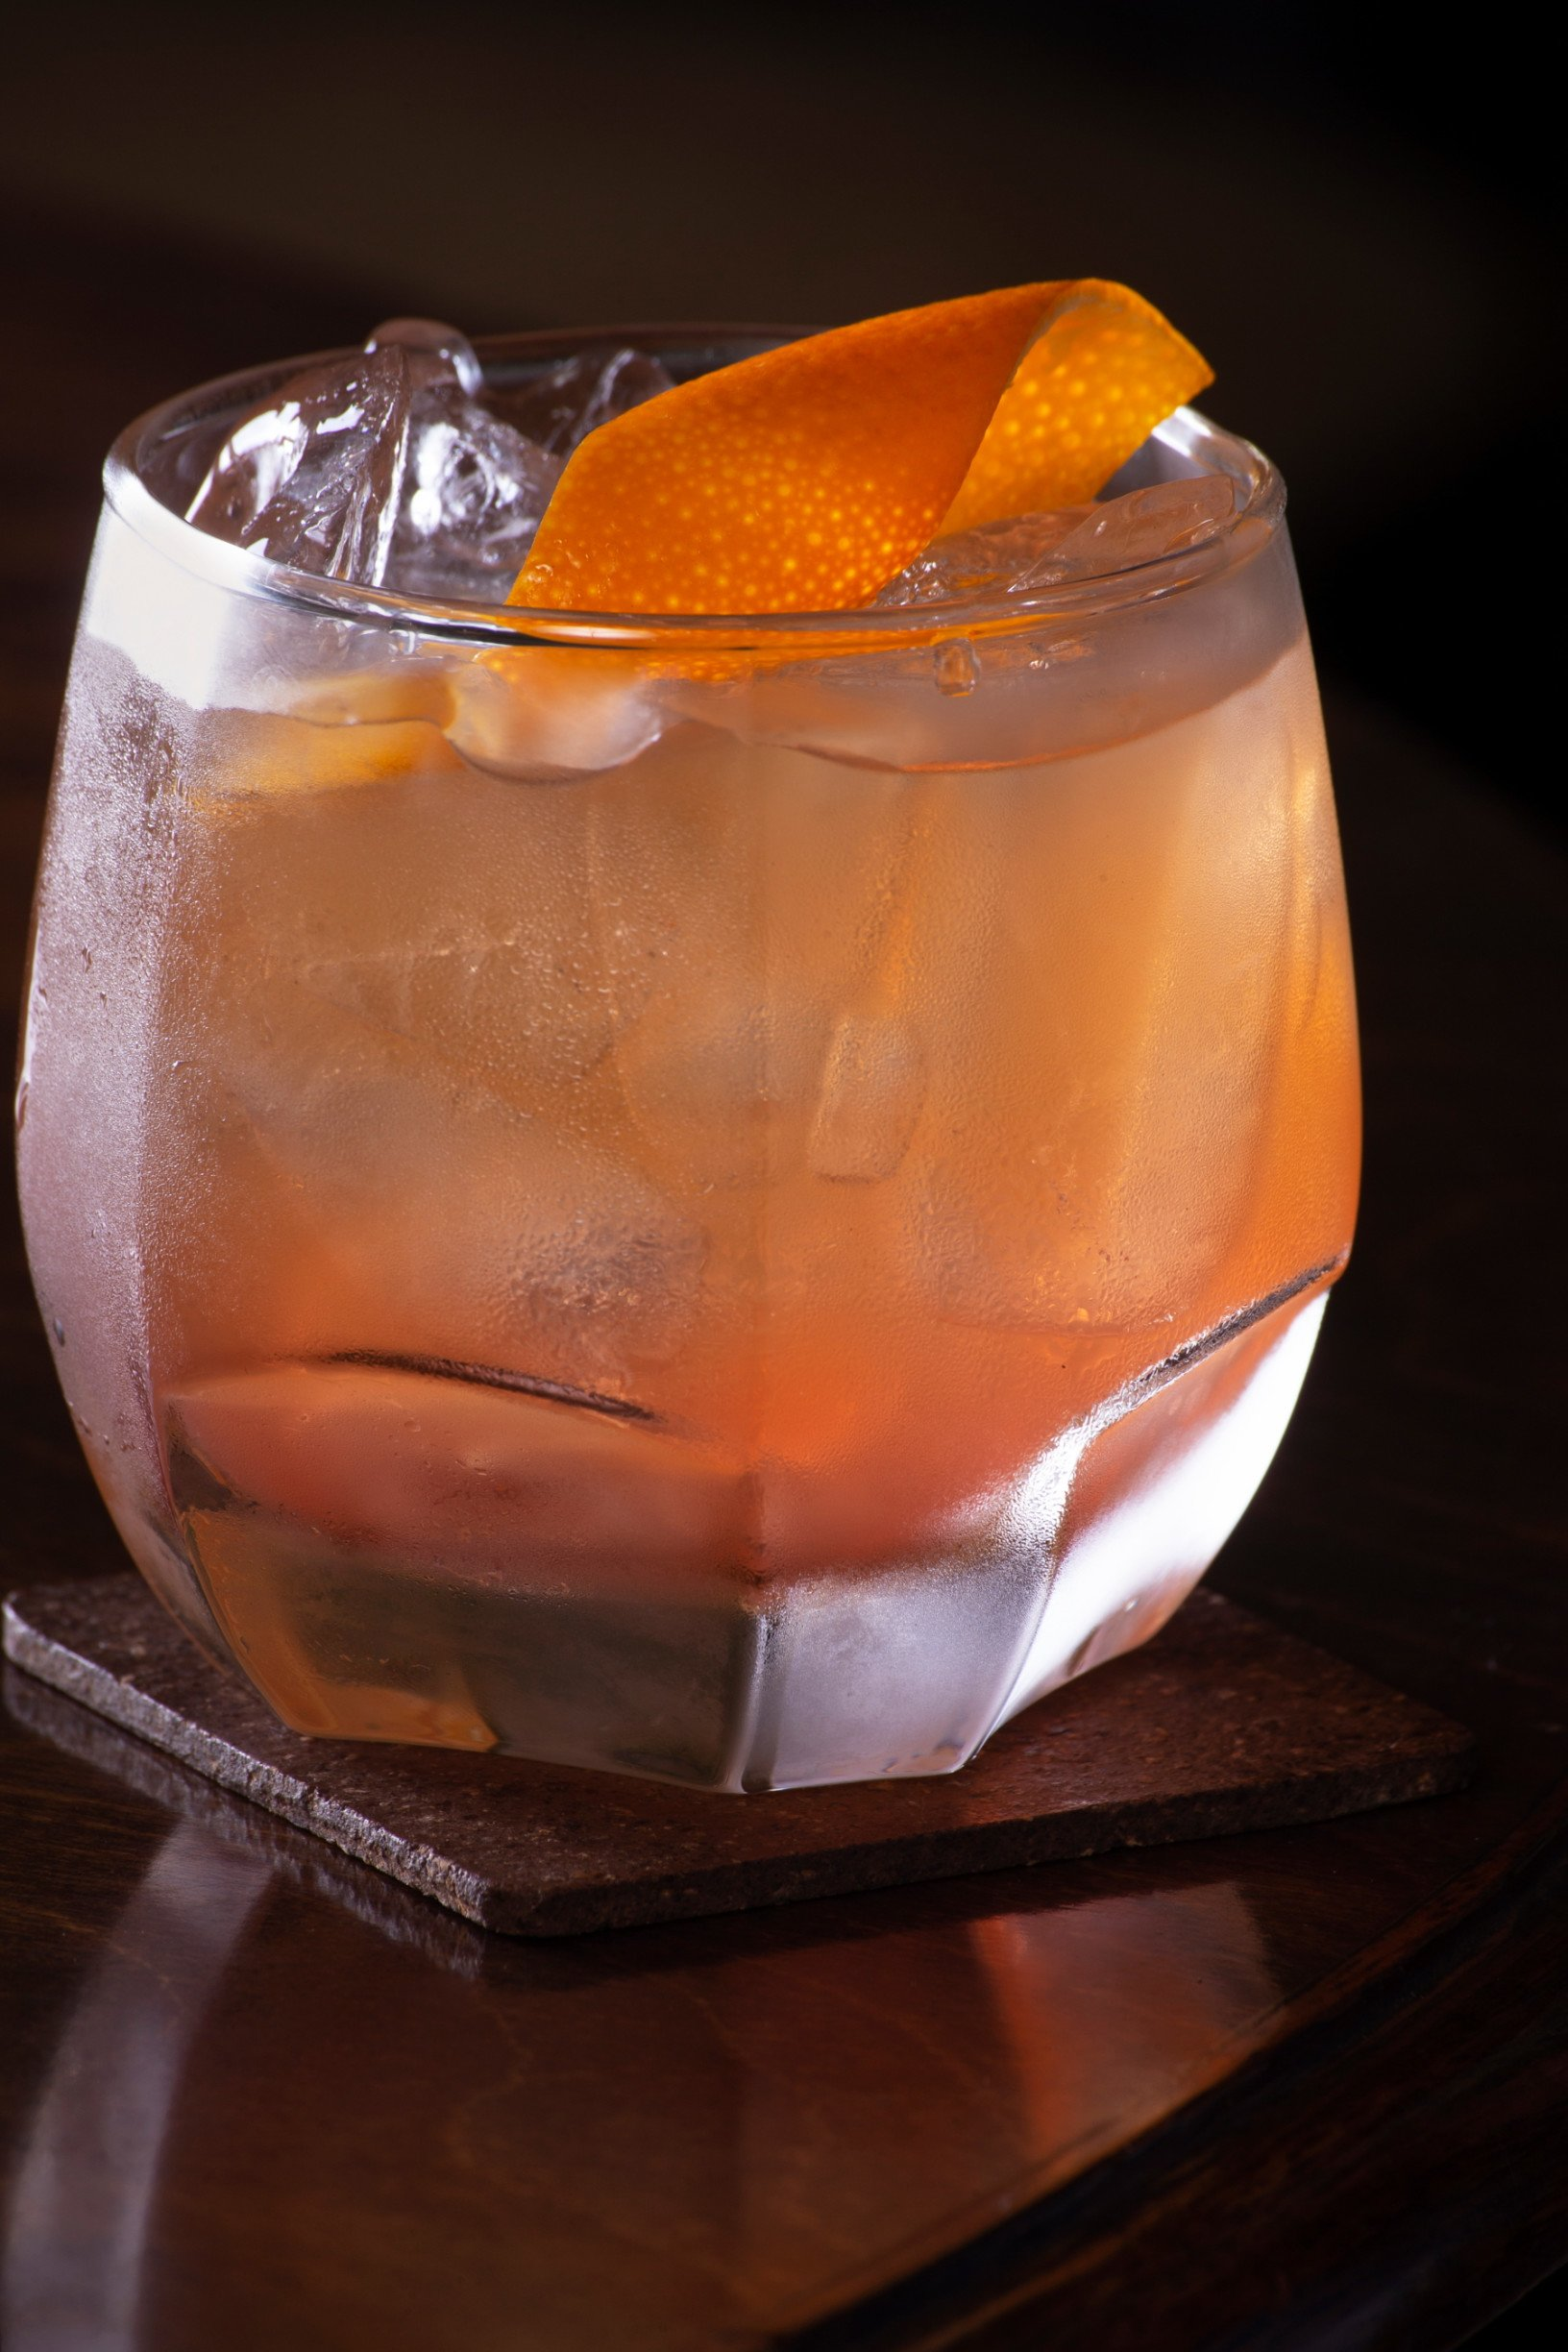 All new Gin & Tonics and Homegrown Infusions with the New Cocktail Menu at Toast & Tonic